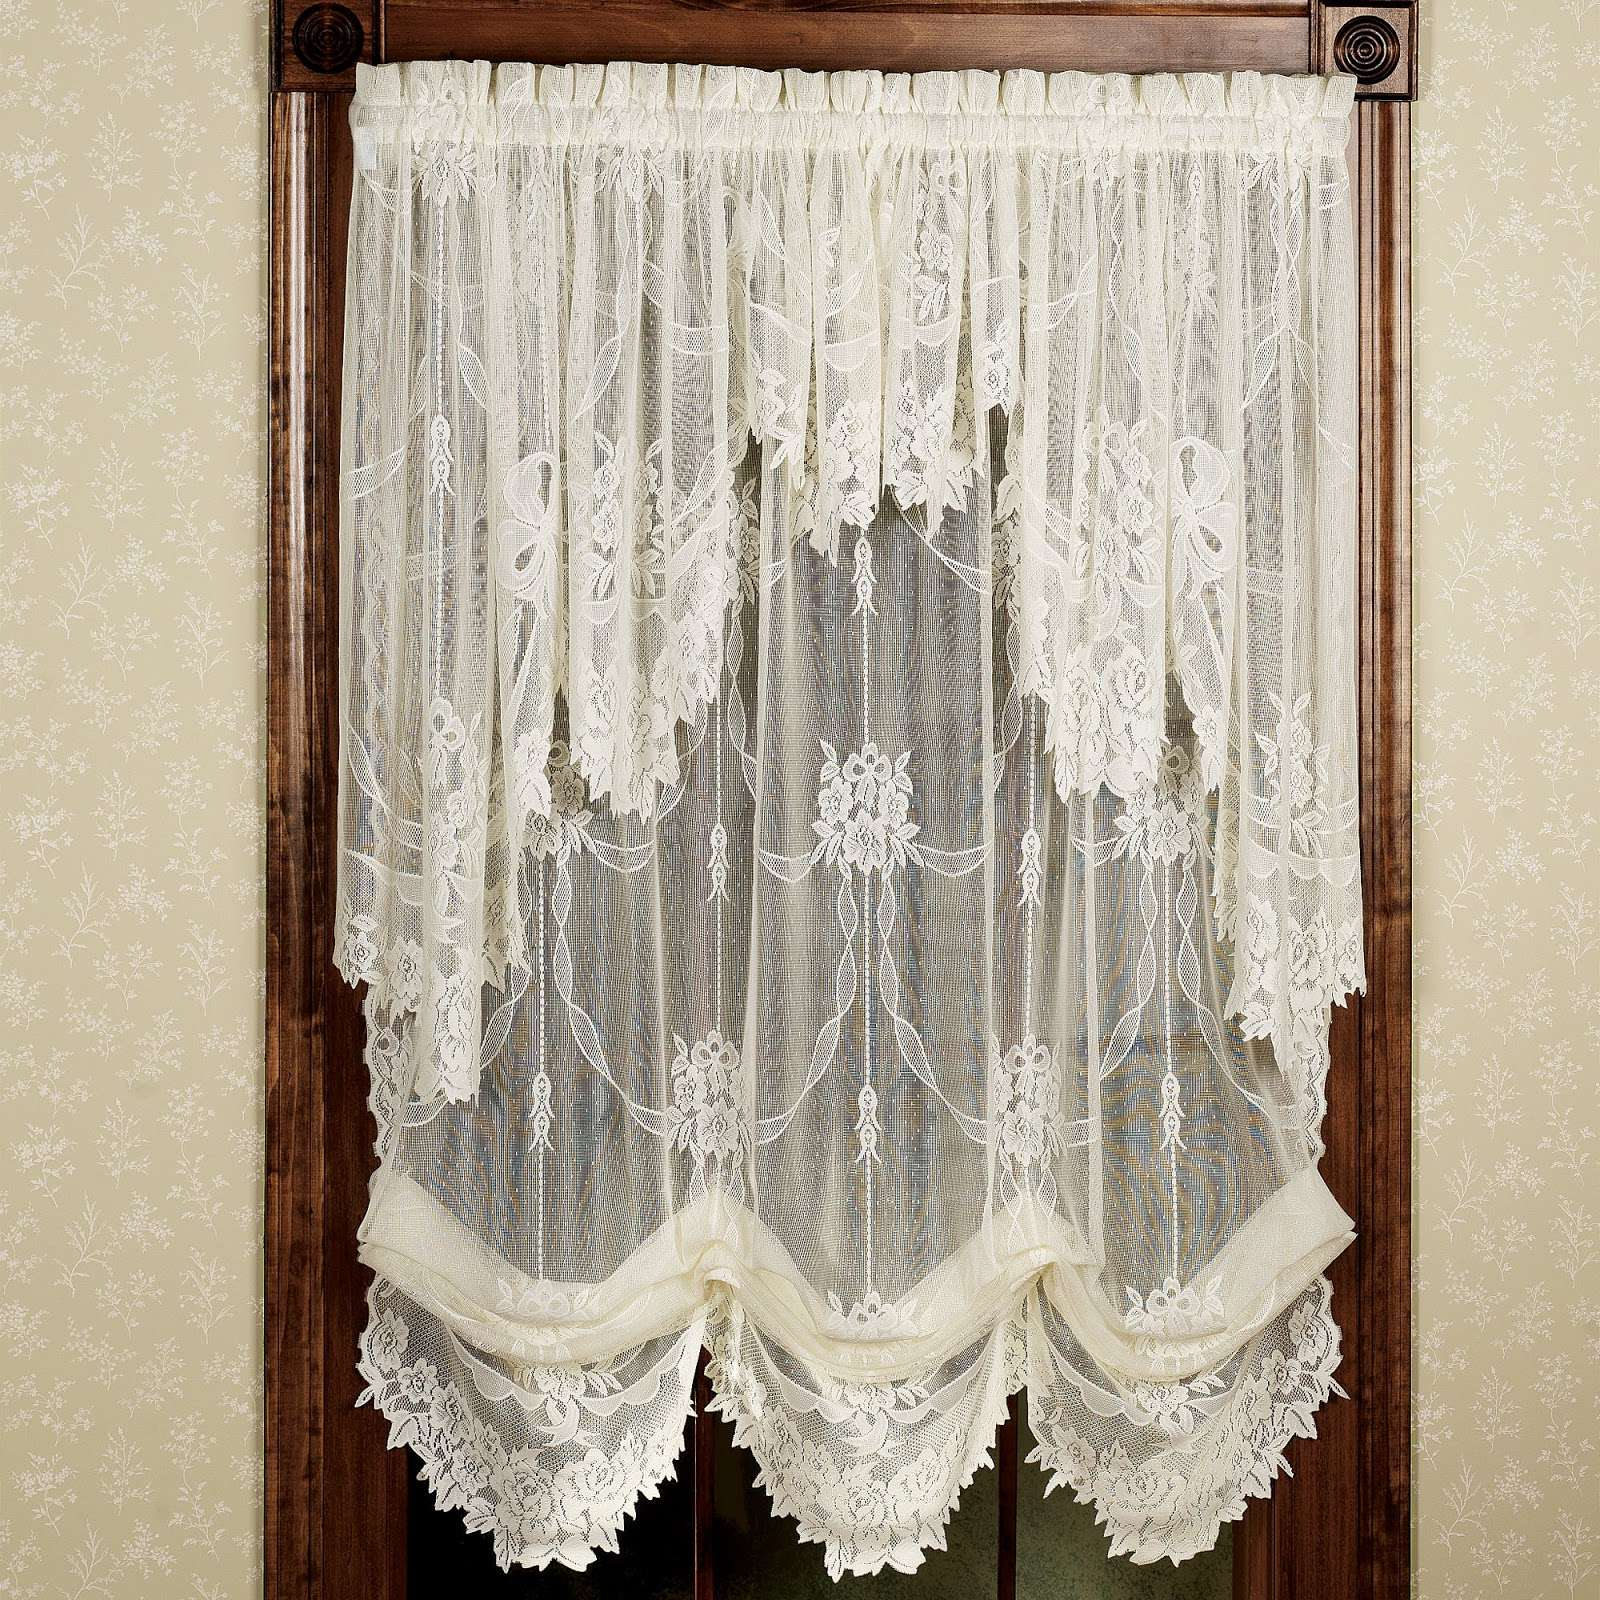 Latest Pretty Country Lace Curtains Swags For Living Room Catalog With Regard To Country Style Curtain Parts With White Daisy Lace Accent (View 18 of 20)